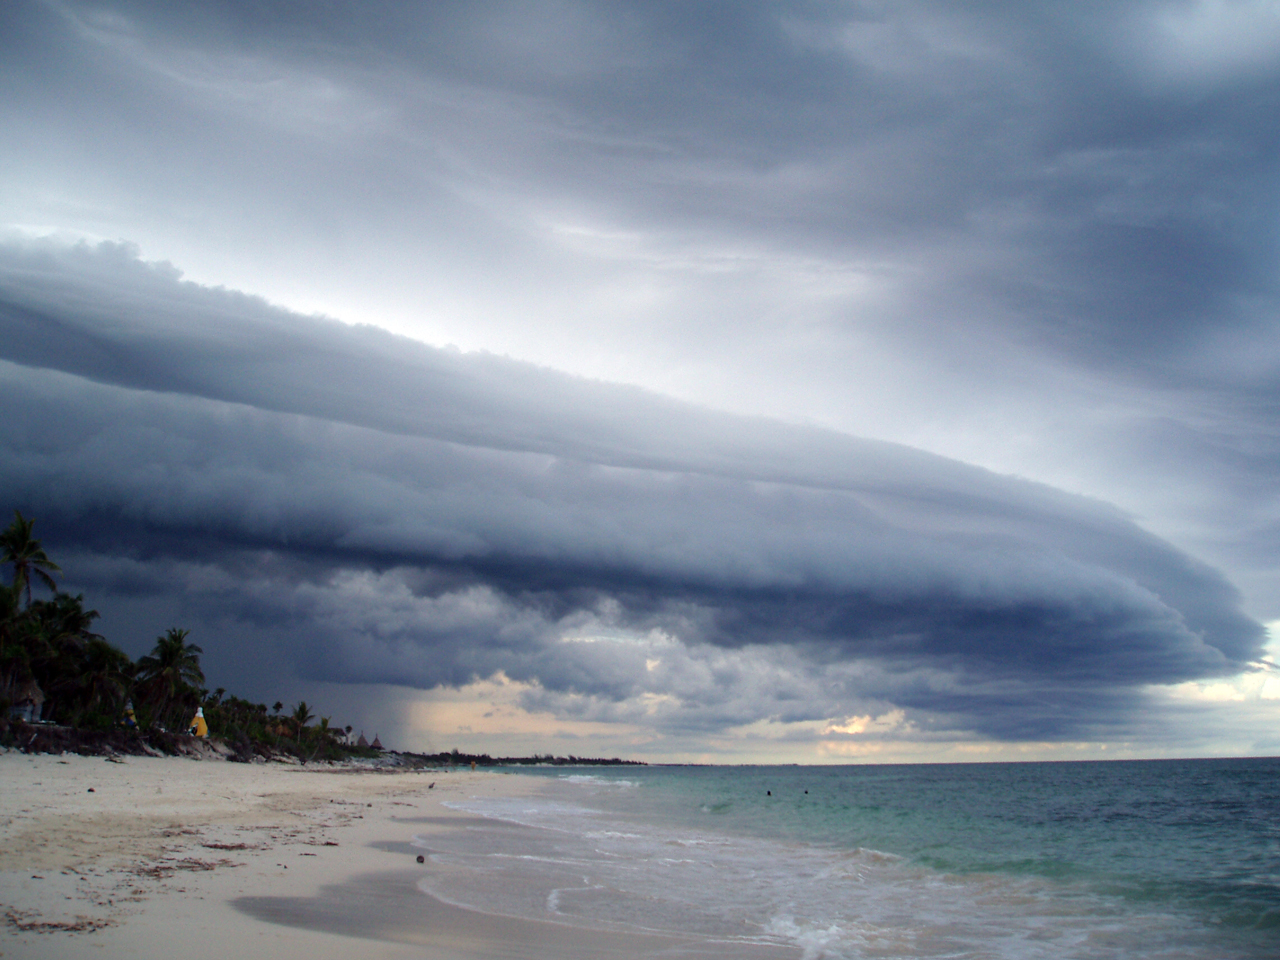 http://upload.wikimedia.org/wikipedia/commons/a/a2/Cloud_over_yucatan_mexico_01.jpg